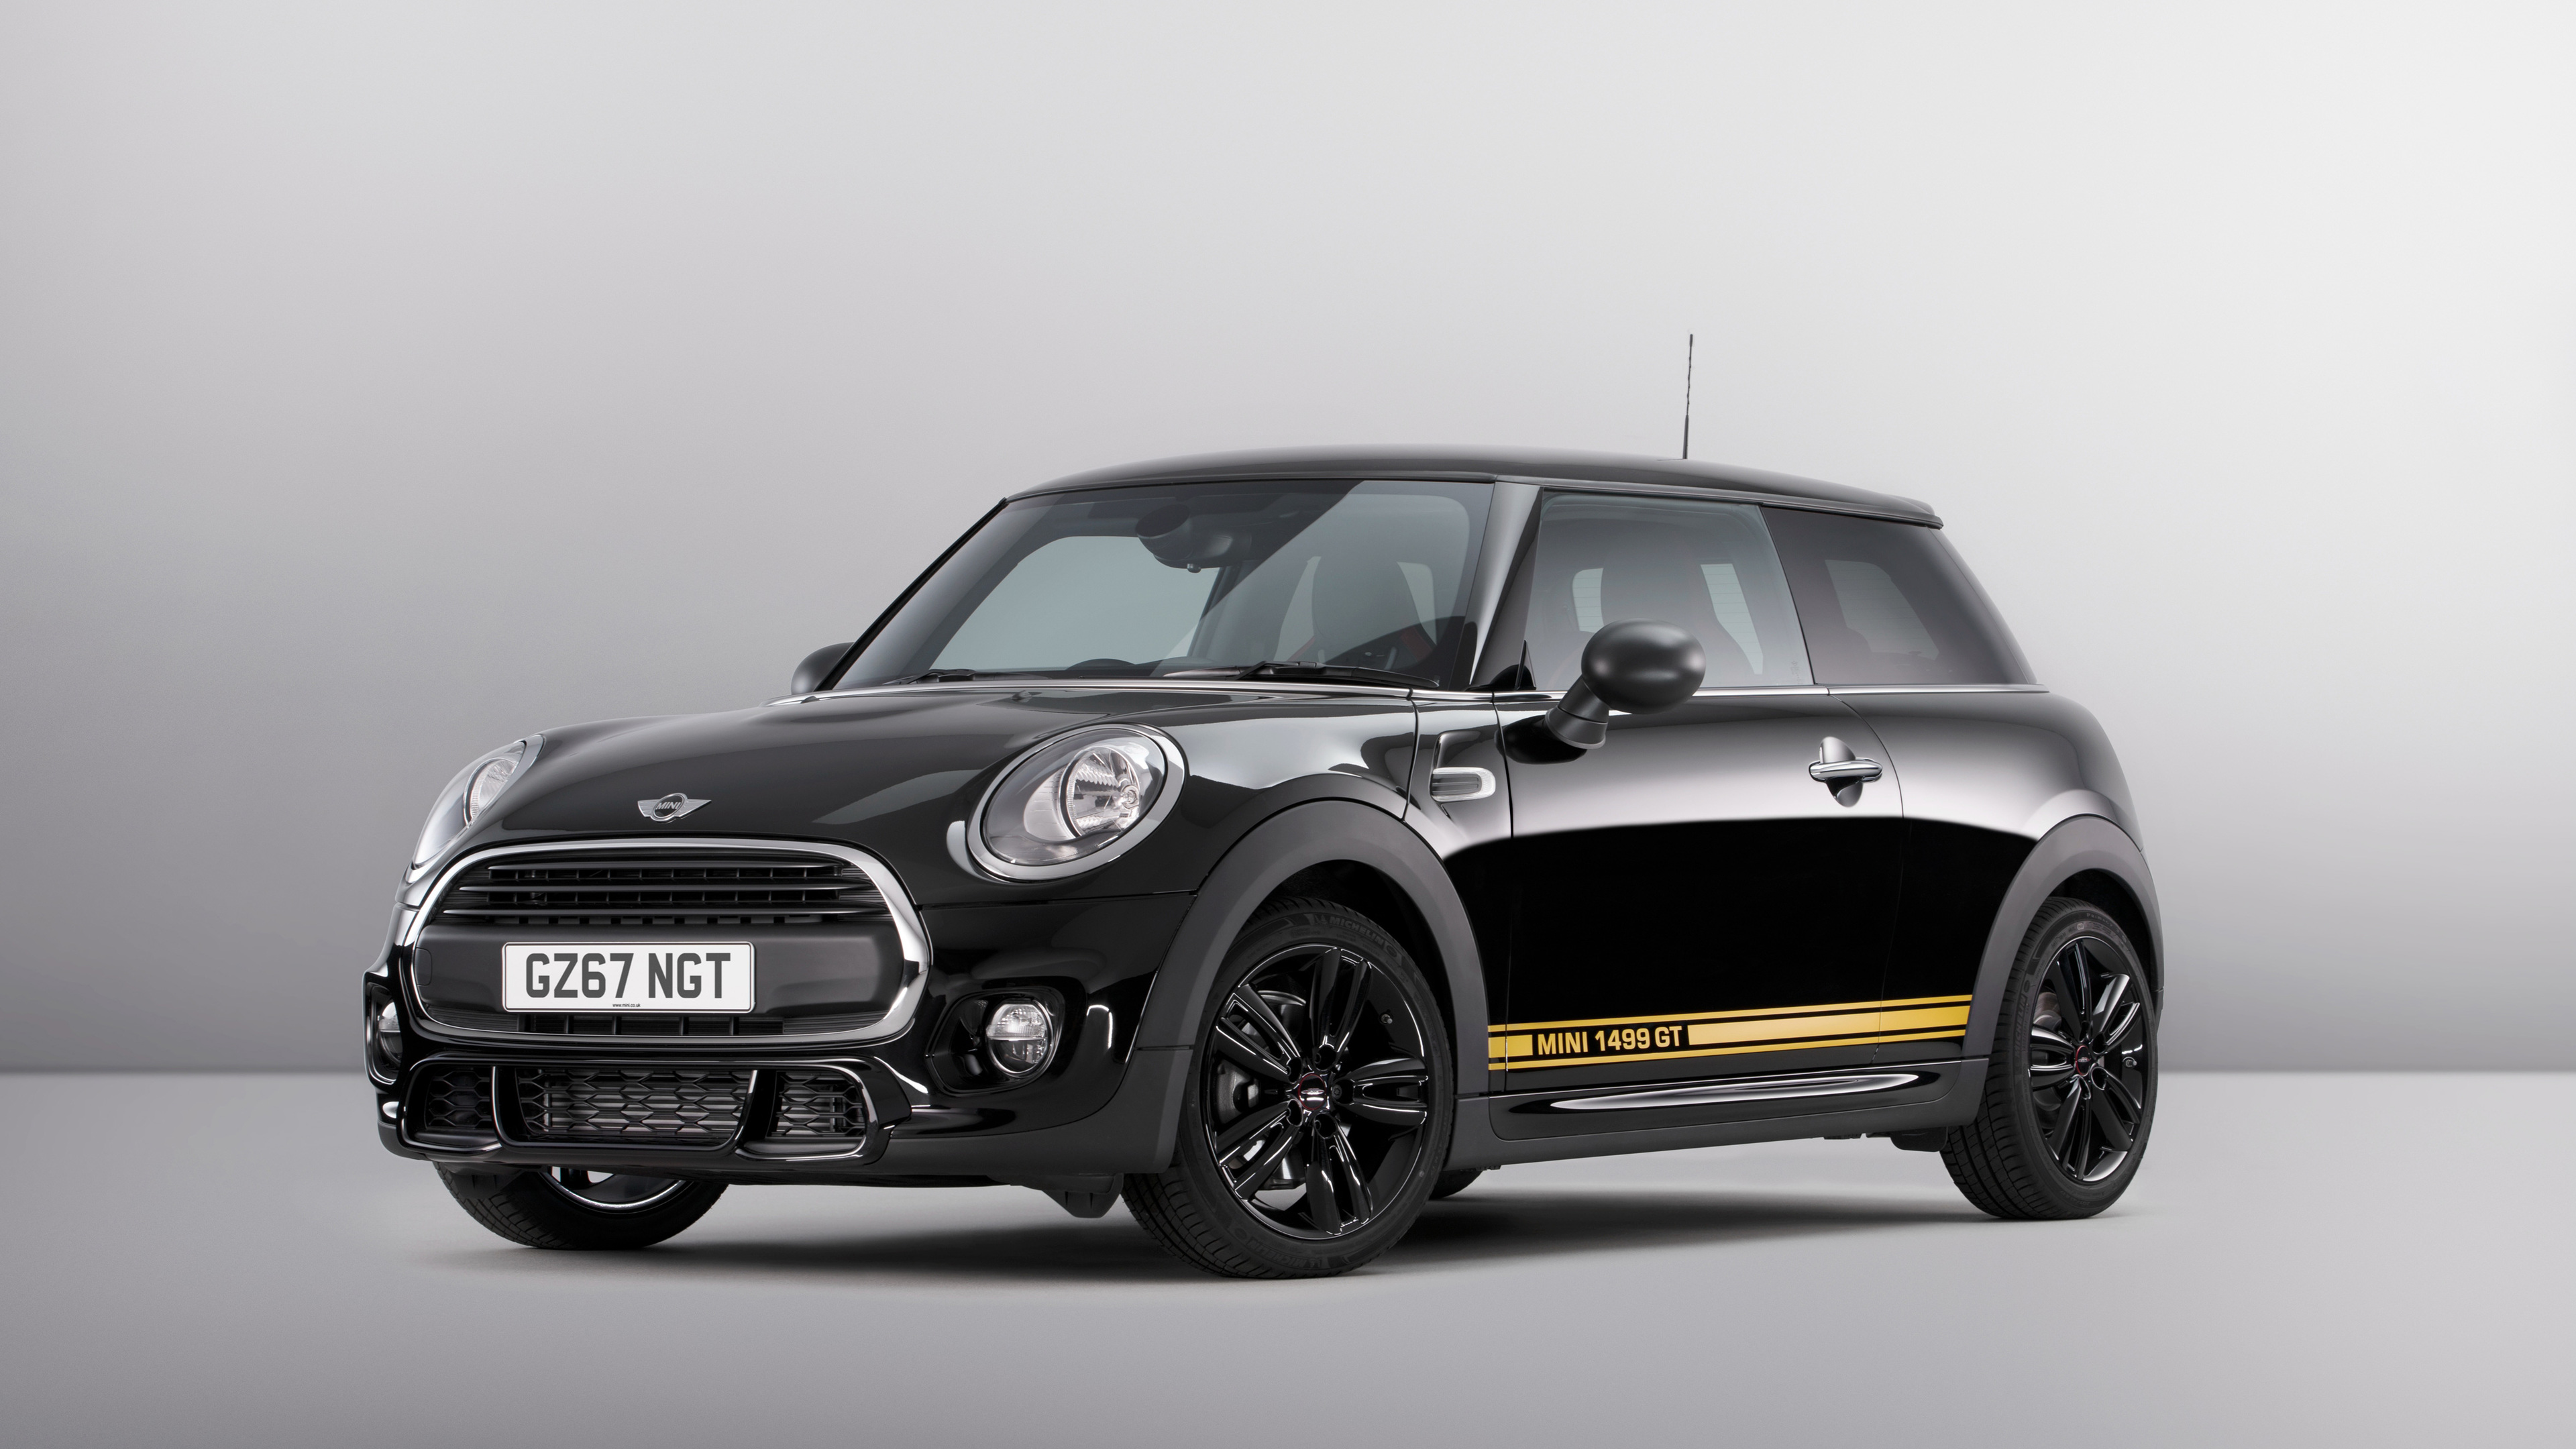 mini cooper 1499 gt 2017 1539107226 - Mini Cooper 1499 GT 2017 - mini cooper wallpapers, hd-wallpapers, cars wallpapers, 4k-wallpapers, 2017 cars wallpapers